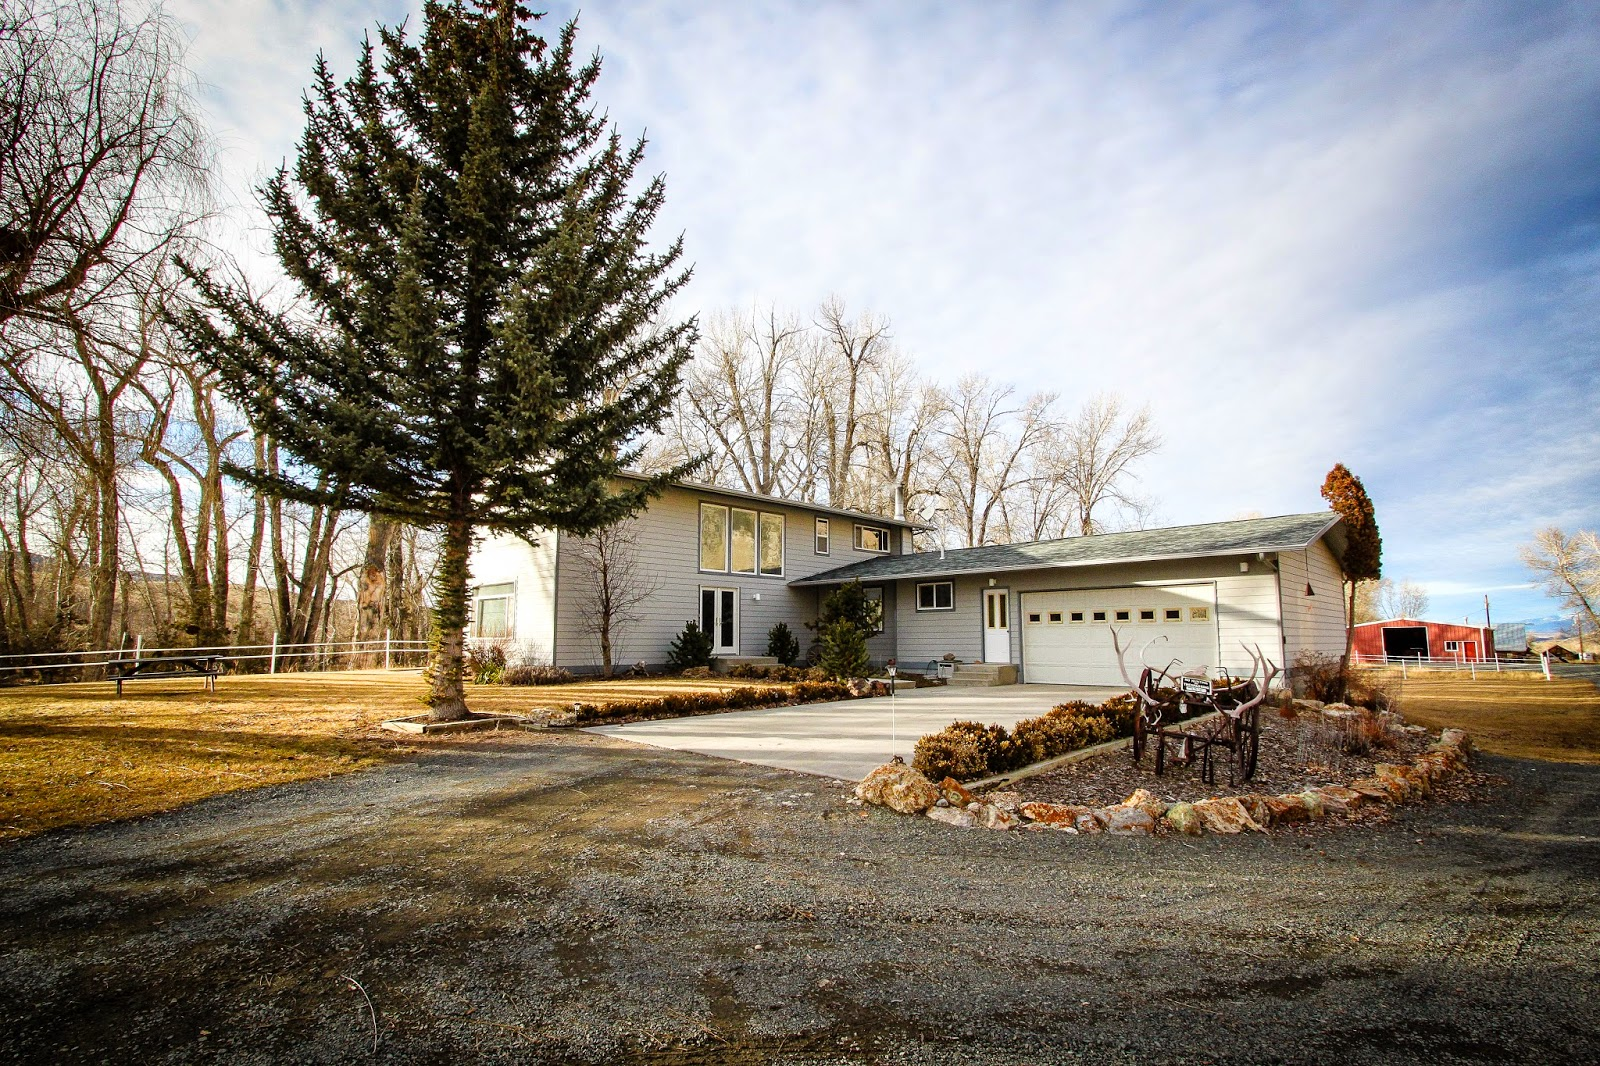 bozeman mt real estate - ranch - private airport - trout - hunting - fishing